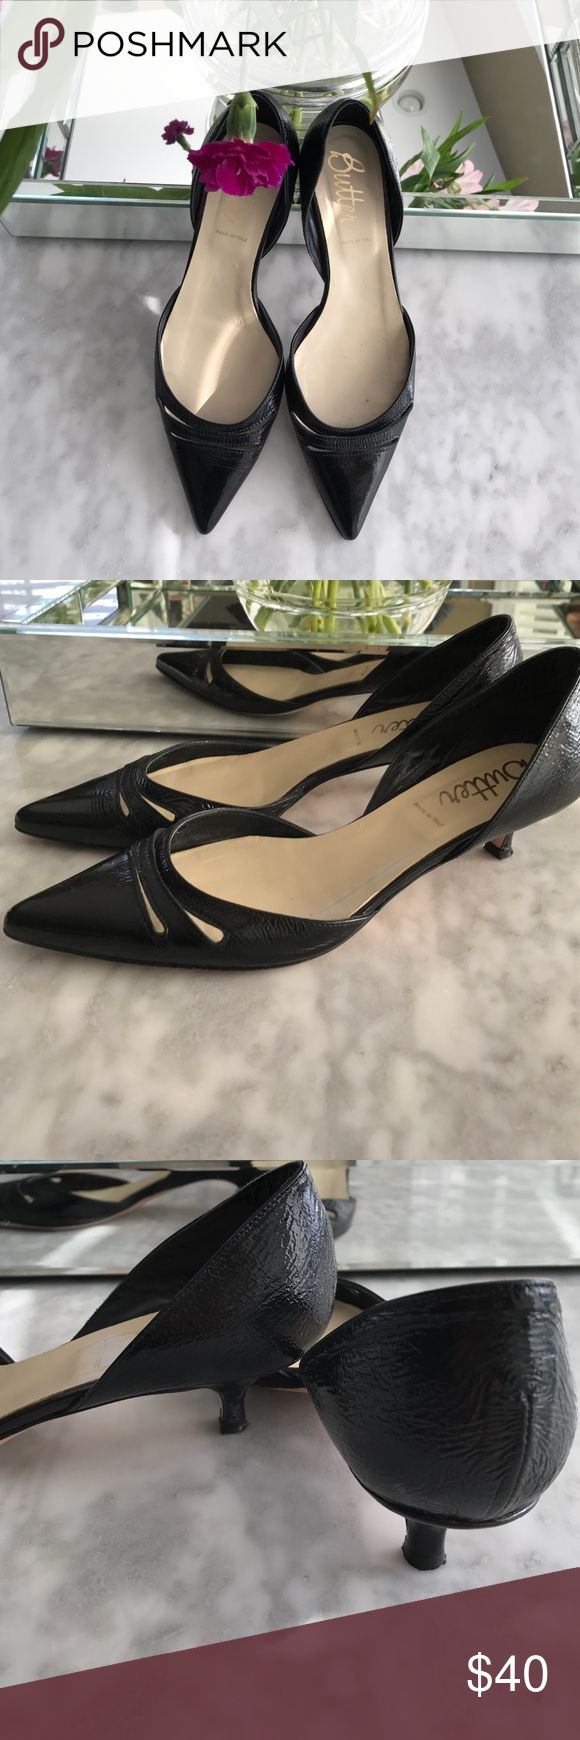 🌸Butter kitten Heel Black Patent Dress Shoes 9 🌸 Such a sweet pair of Butter designer brand black Patent kitten heels! Full d'orsay style, easy shoe for any occasion, low kitten heel. Size 9, worn only a few times, no scuffs or scratches. No holds, no 🅿️🅿️or♏️-thank you! 💕😘 Butter Shoes Shoes Heels